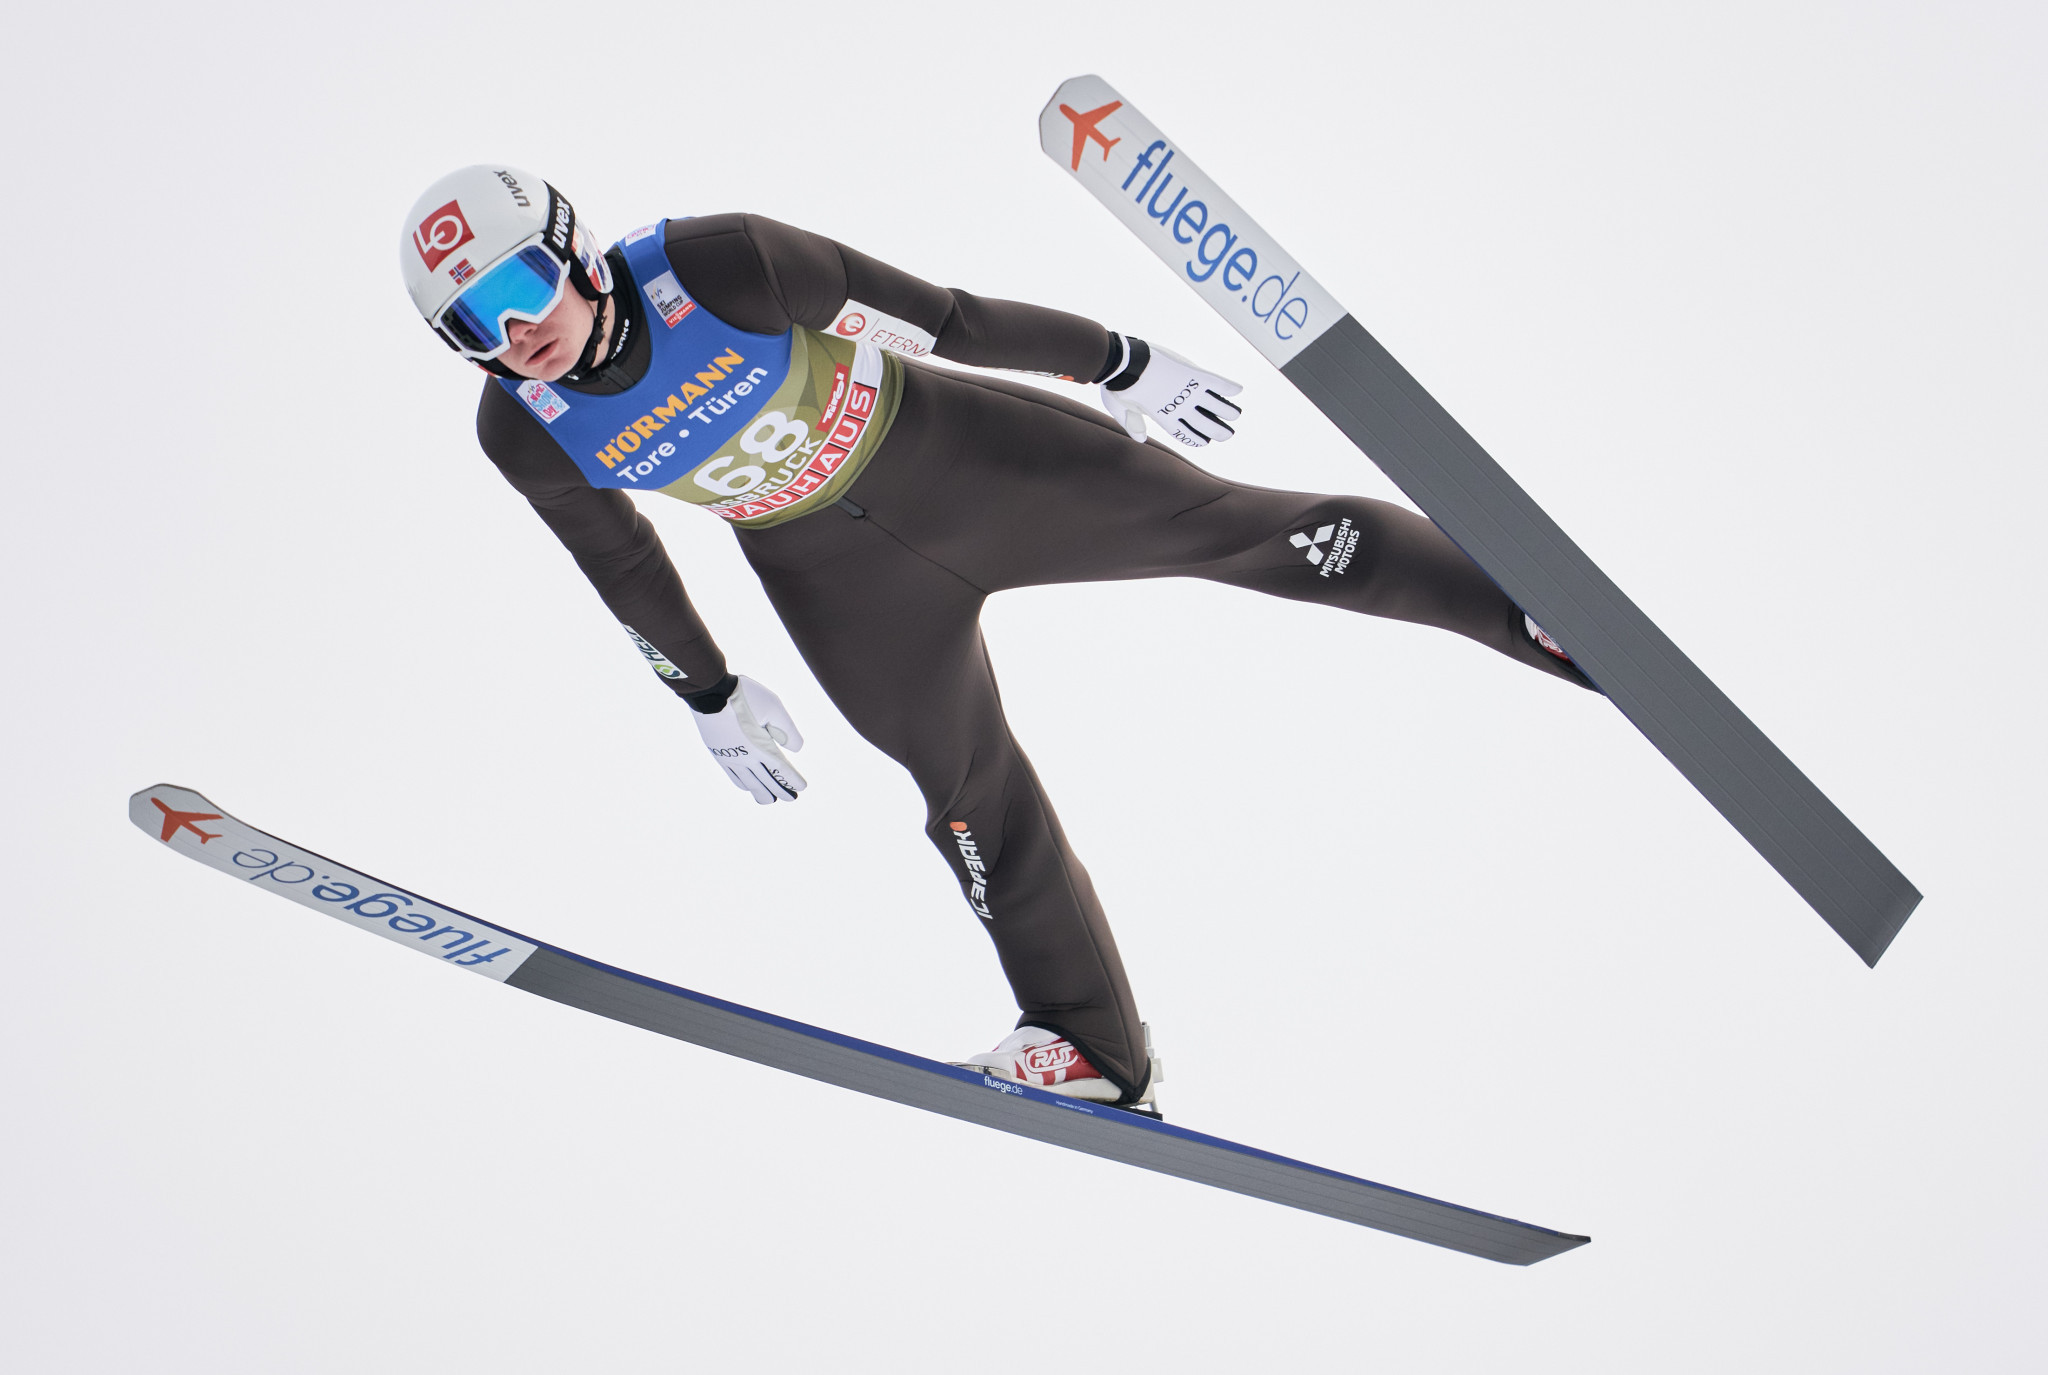 Lindvik tops qualification at Four Hills Tournament in Innsbruck